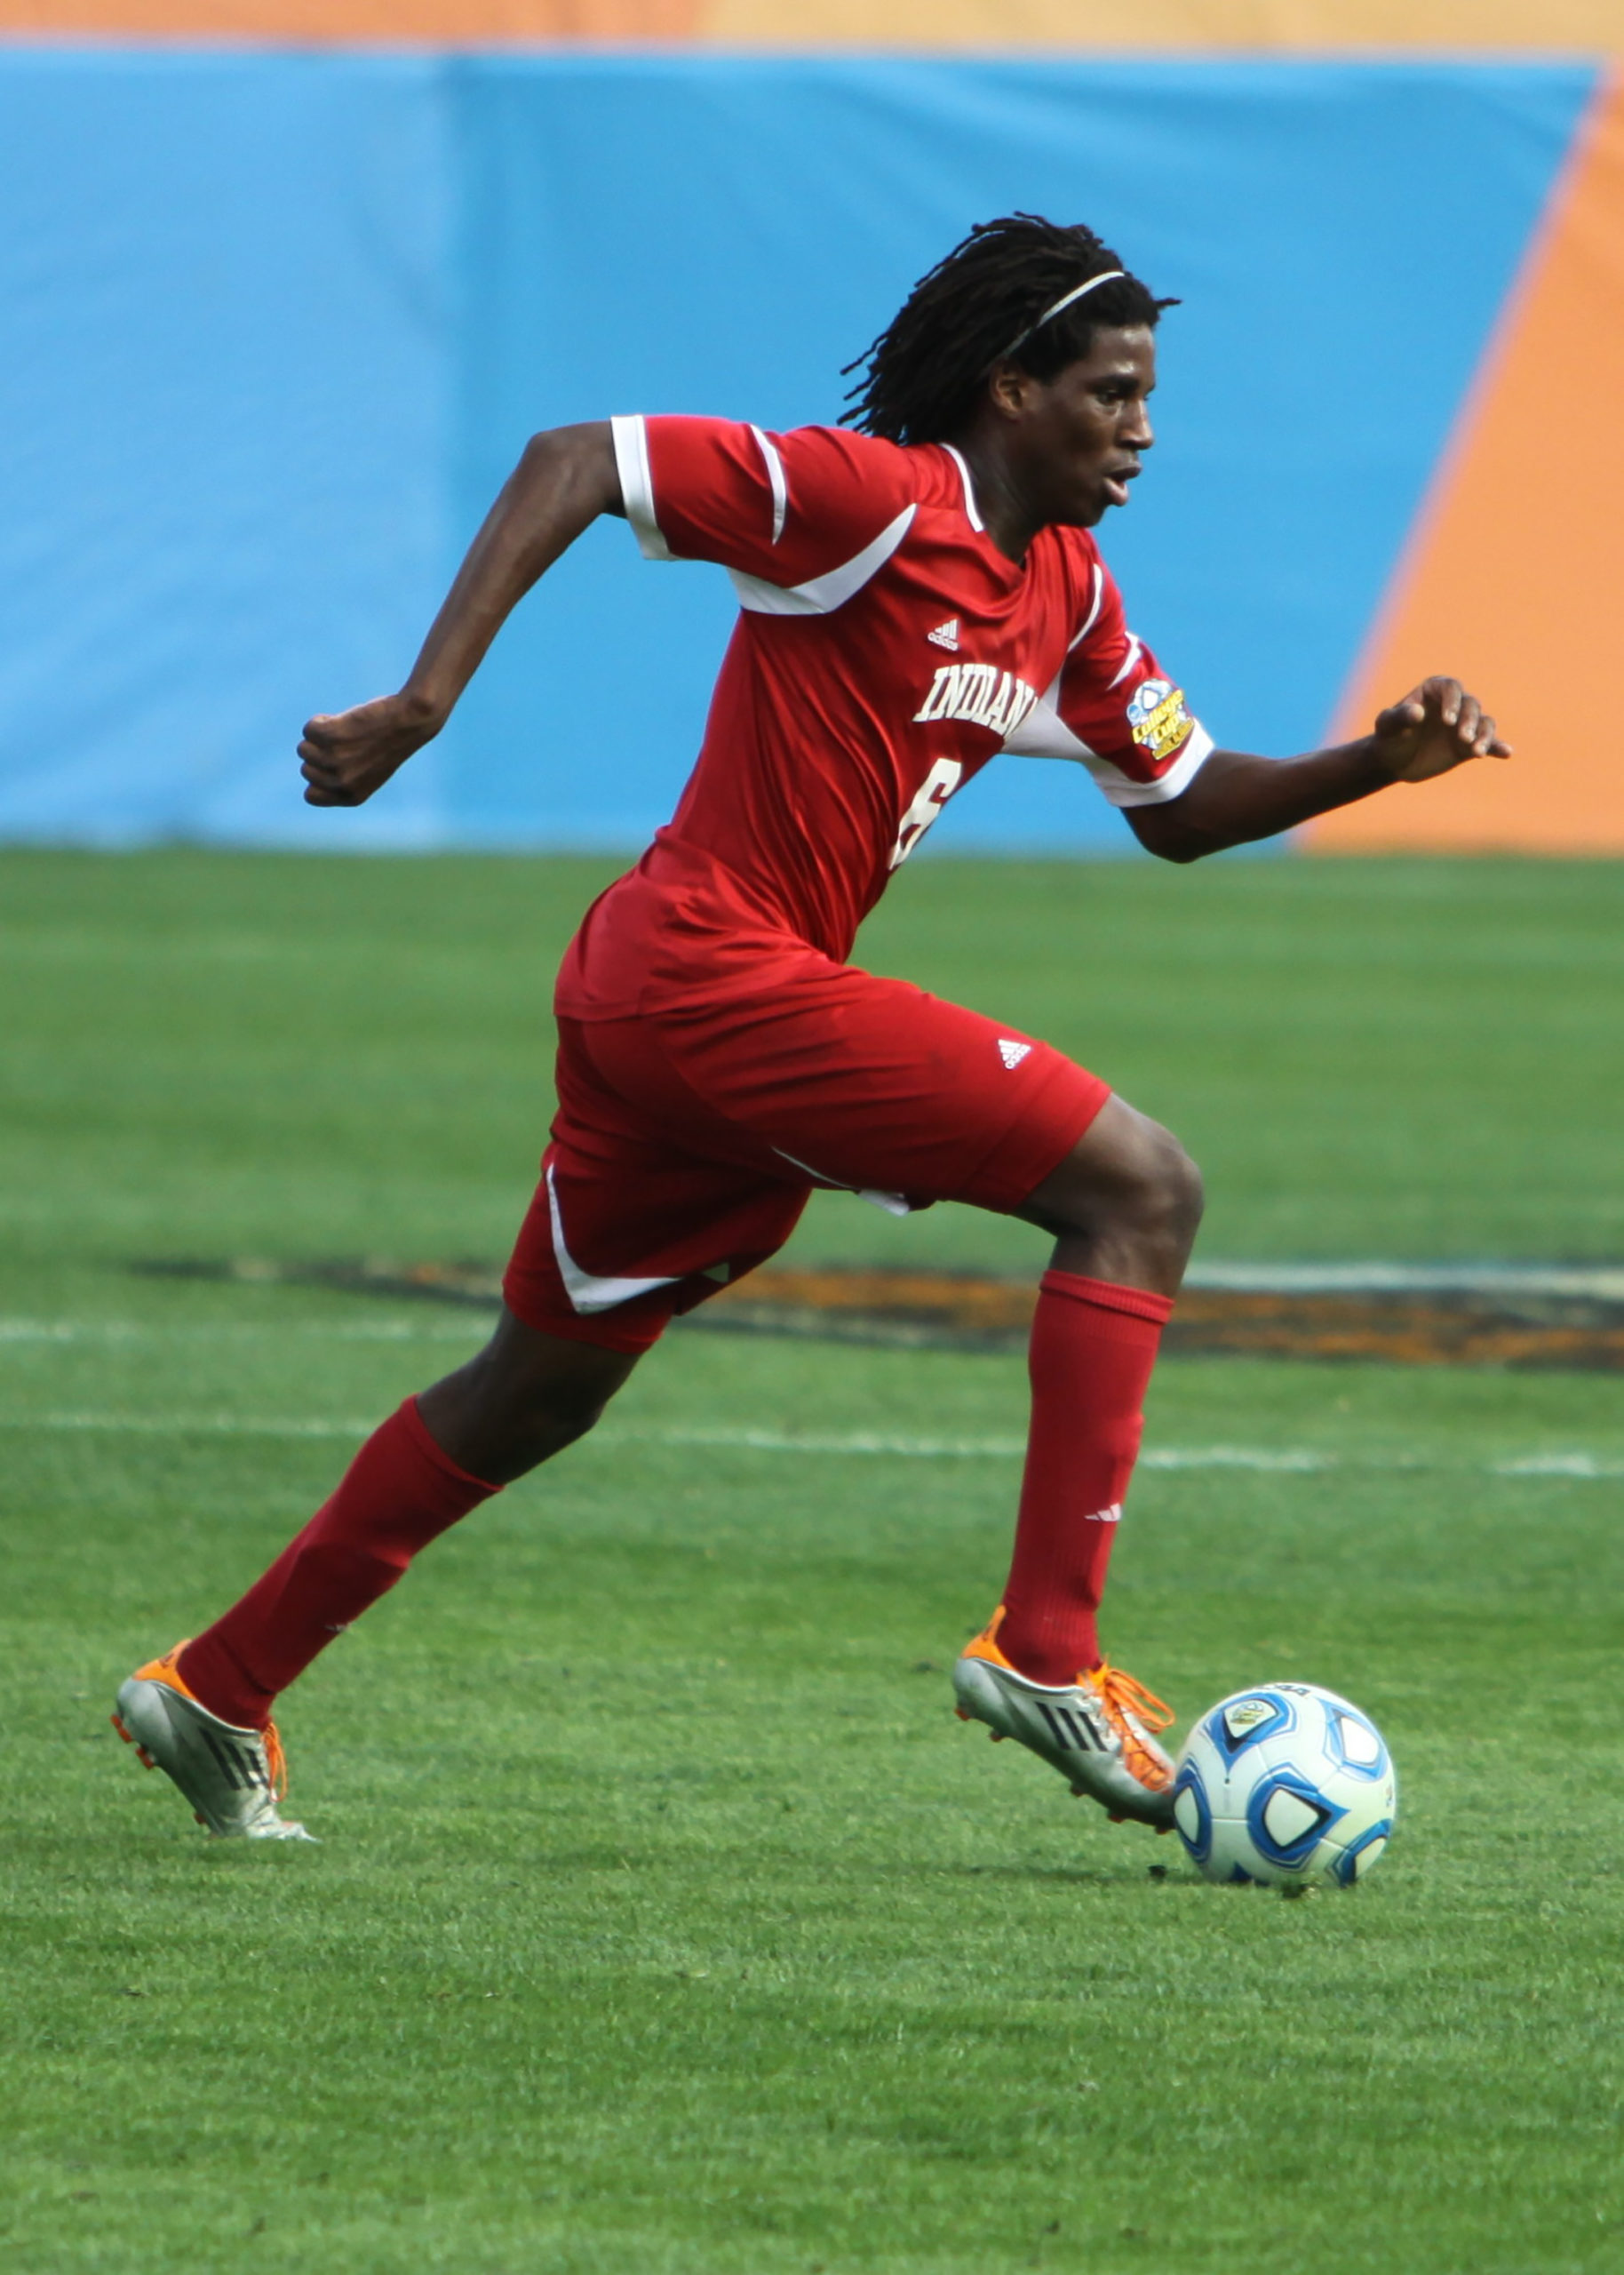 Today he plays forward-midfielder on the Indiana University (in Bloomington) soccer team. During Femi's first year there in 2012-2013, the IU soccer team won the national championship. Femi appeared on the cover of a March Sports Illustrated along with some other athletes.